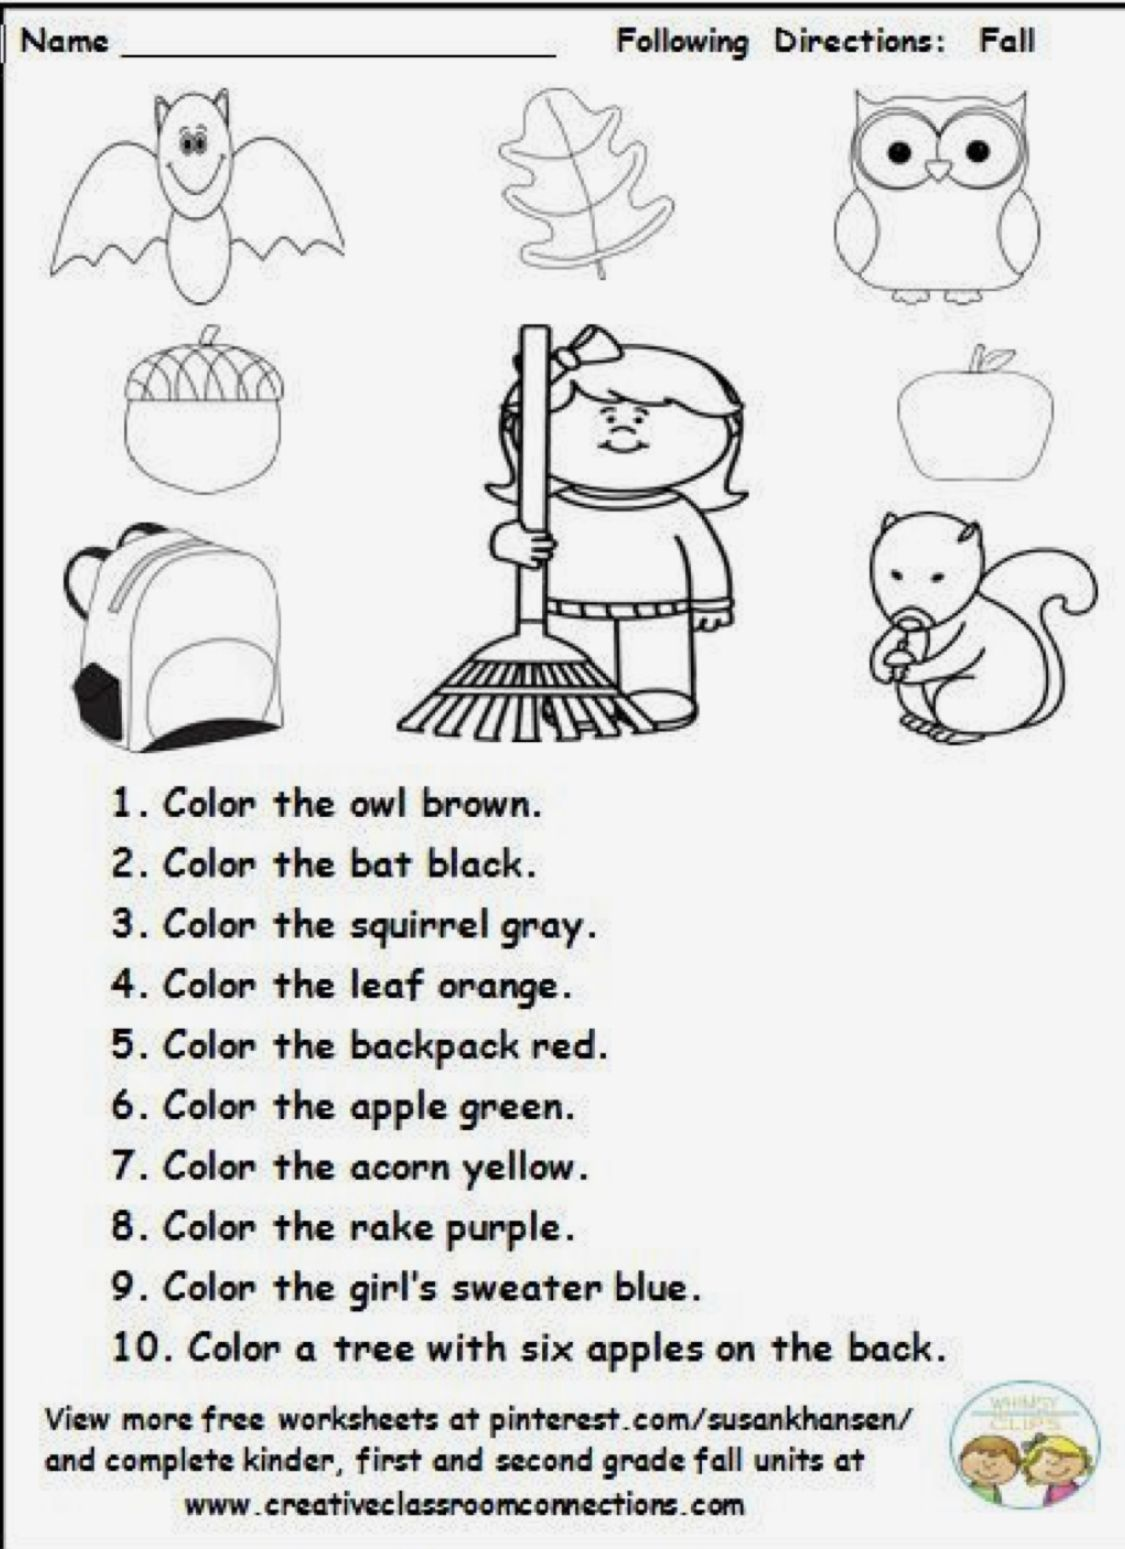 hight resolution of Fall coloring   Following directions activities